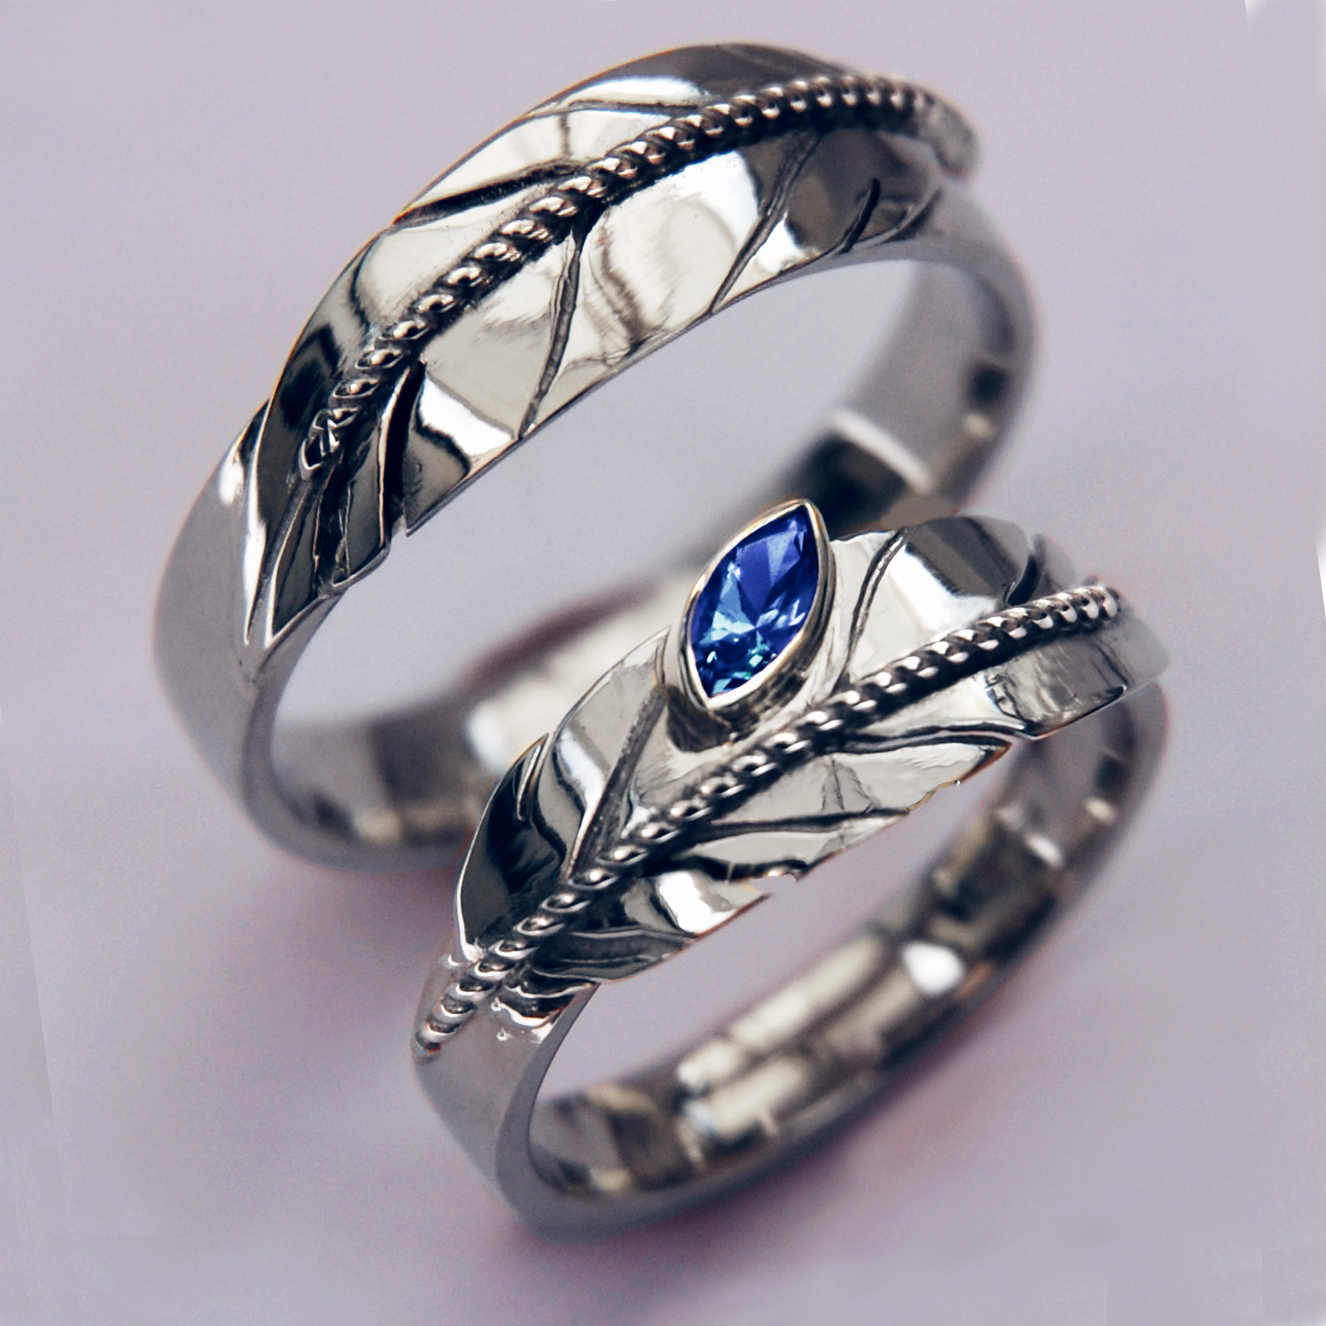 ojibwe native american silver wedding native american wedding rings Click on the links beneath the ring images to view details of the wedding rings